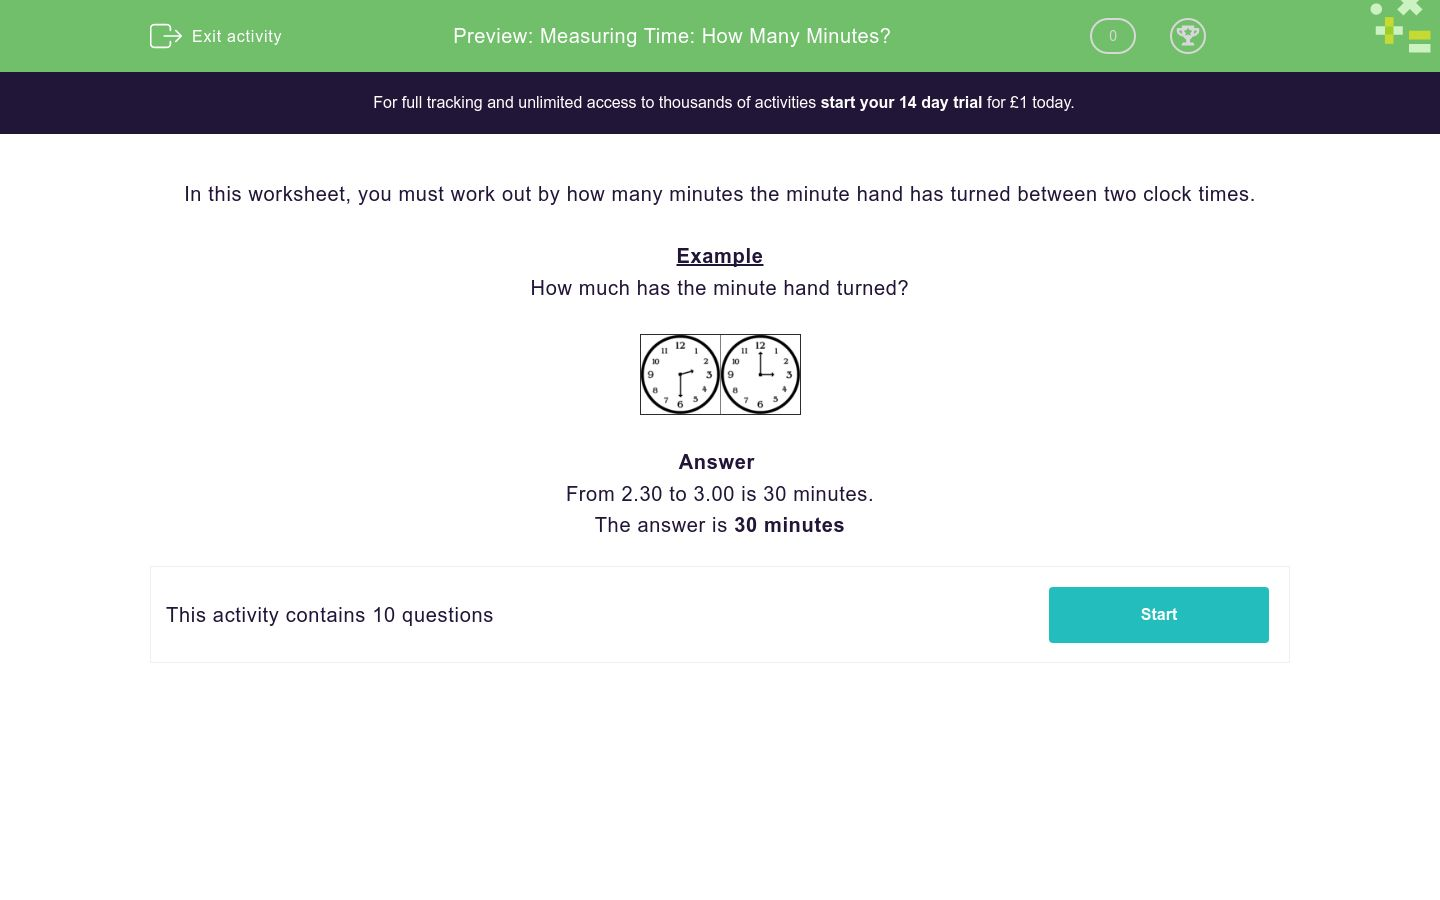 'Measuring Time: How Many Minutes?' worksheet